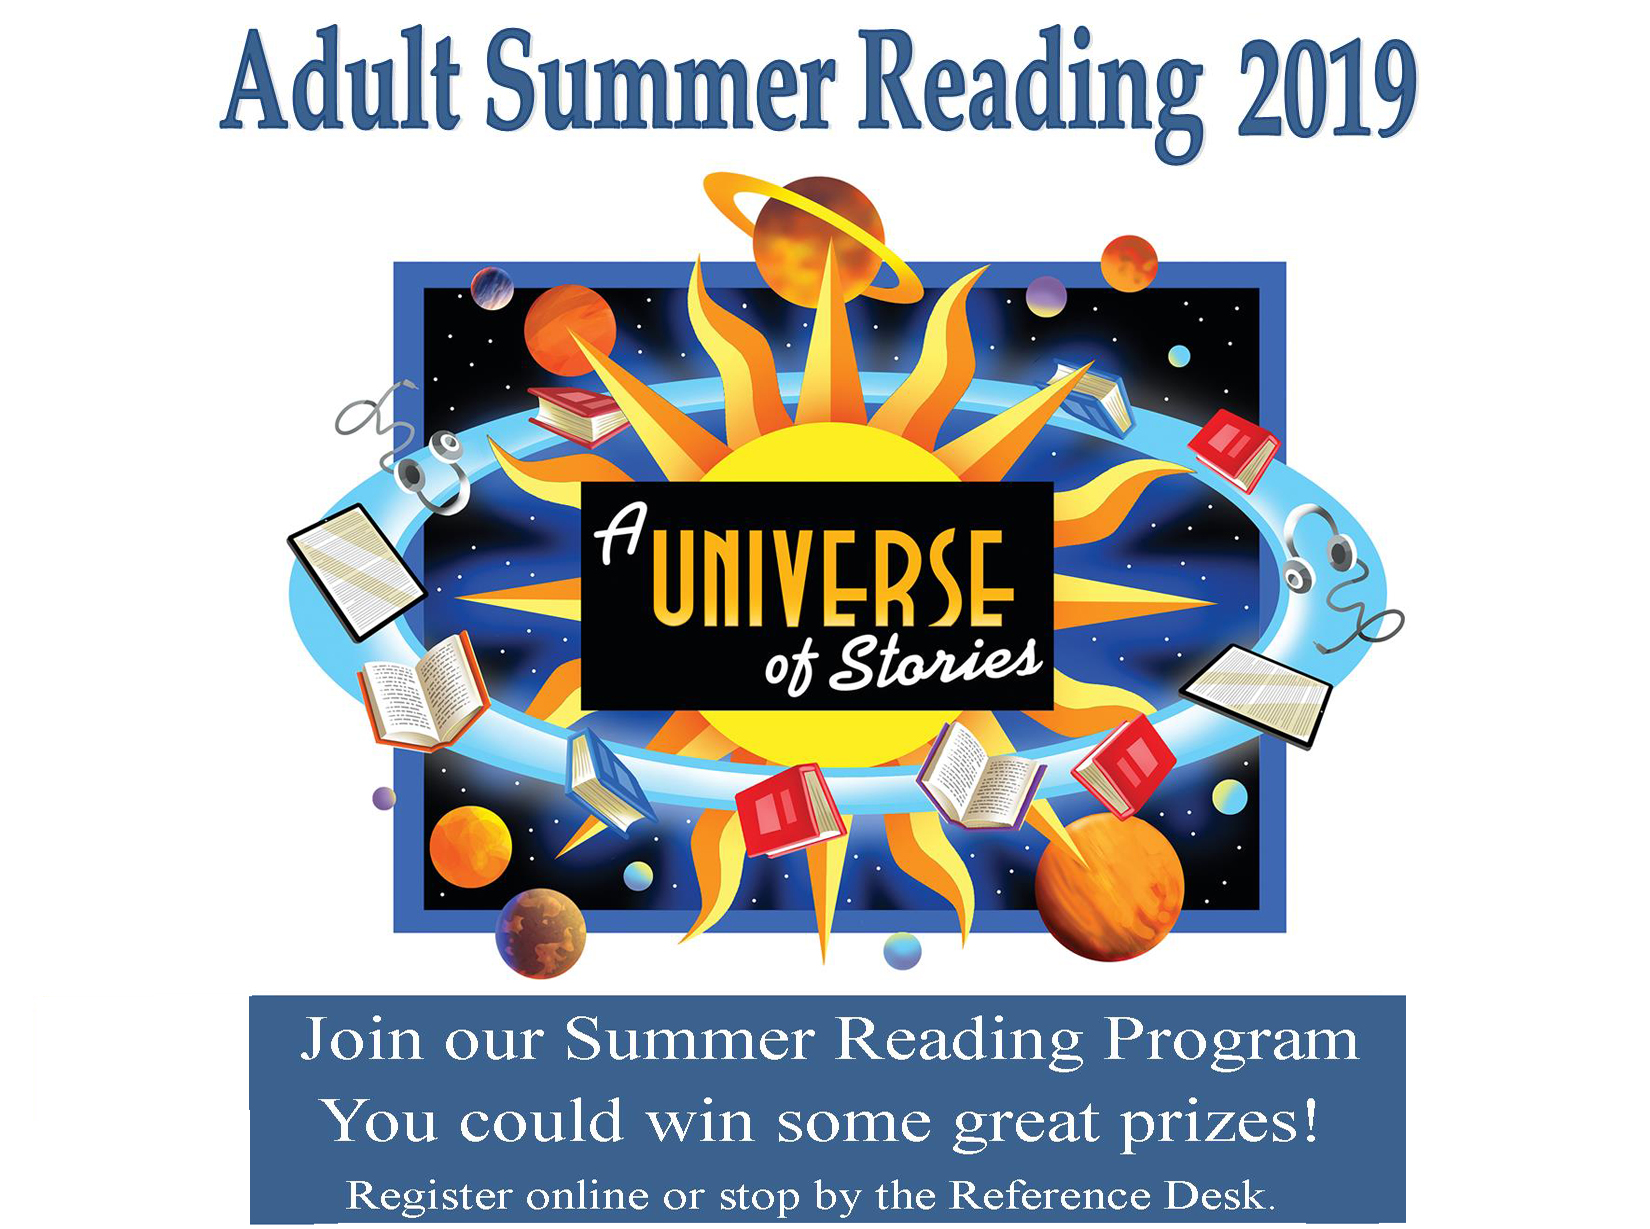 Join our Summer Reading Program 2